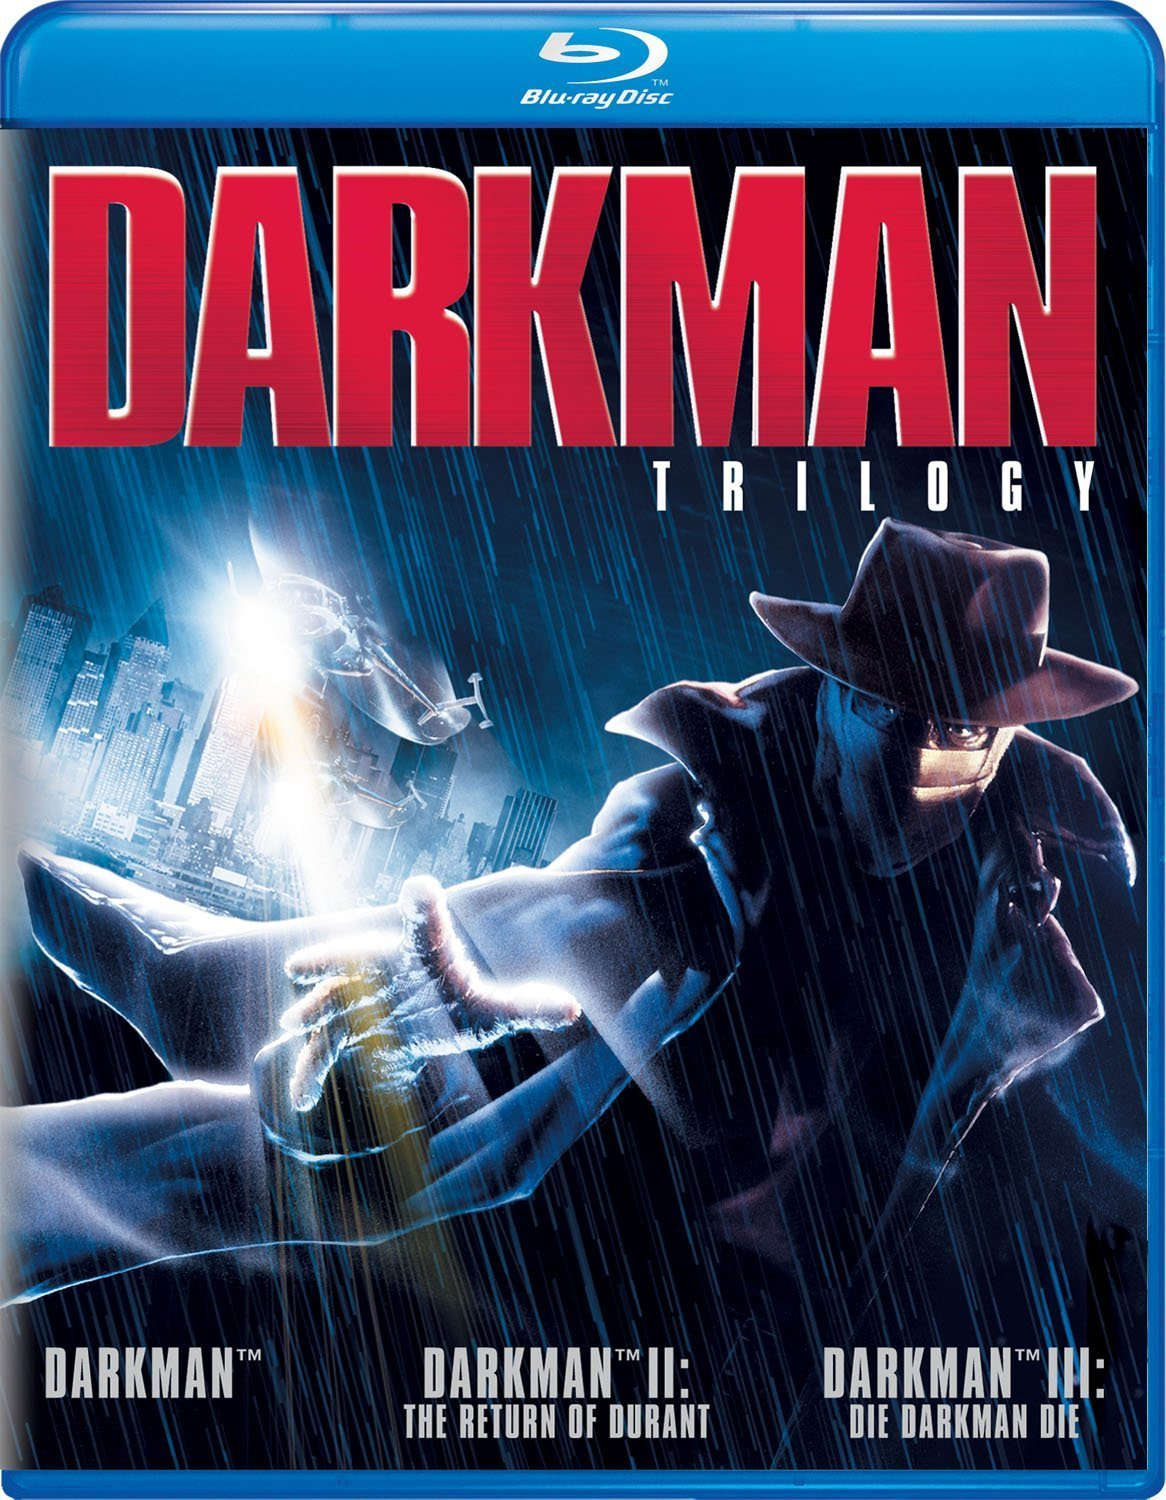 Darkman Trilogy (1990-1996) Blu-ray